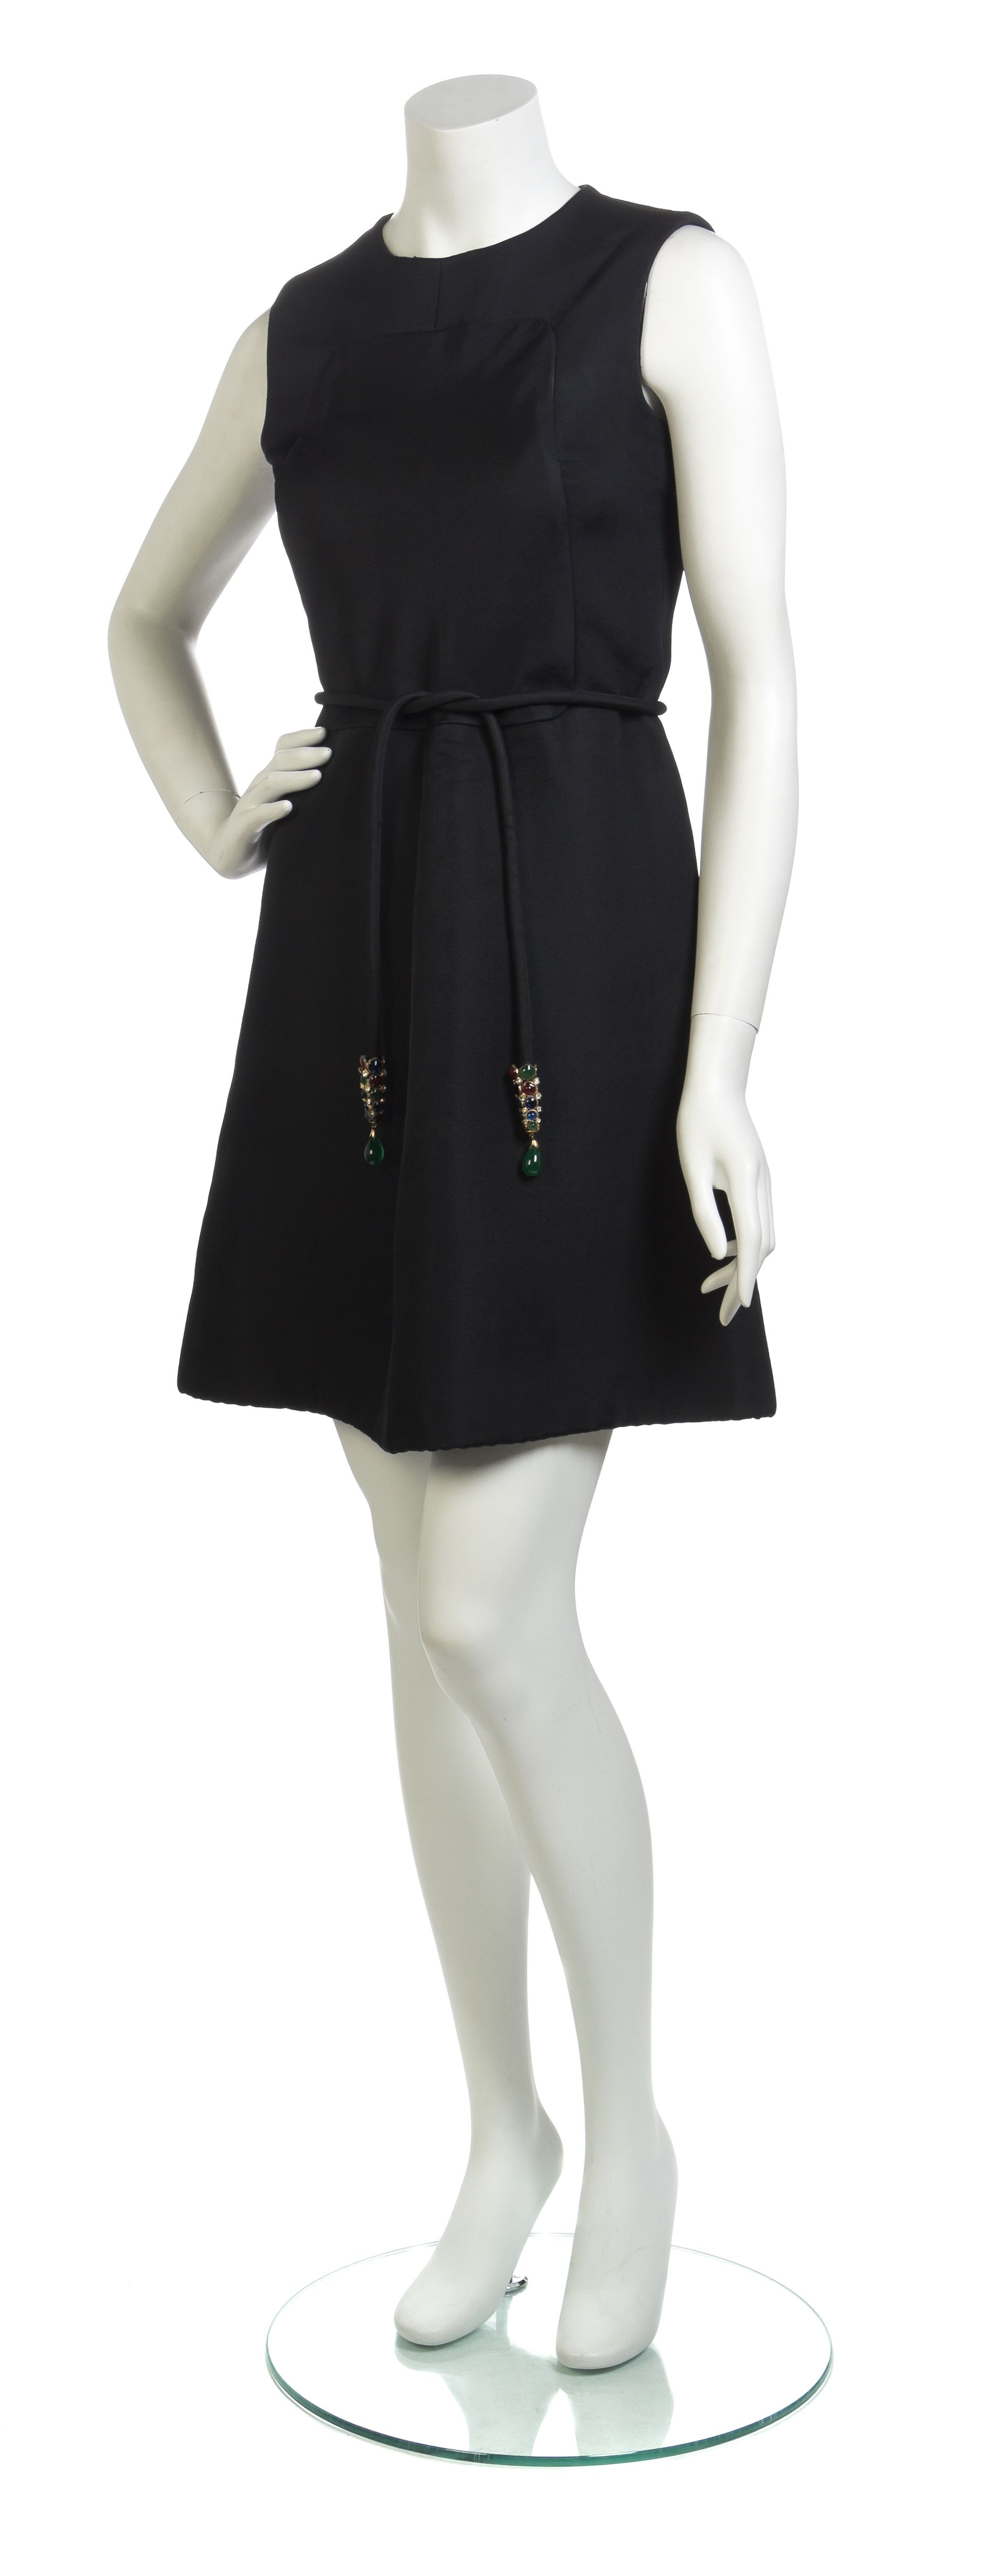 A Christian Dior Couture Black Cocktail Dress